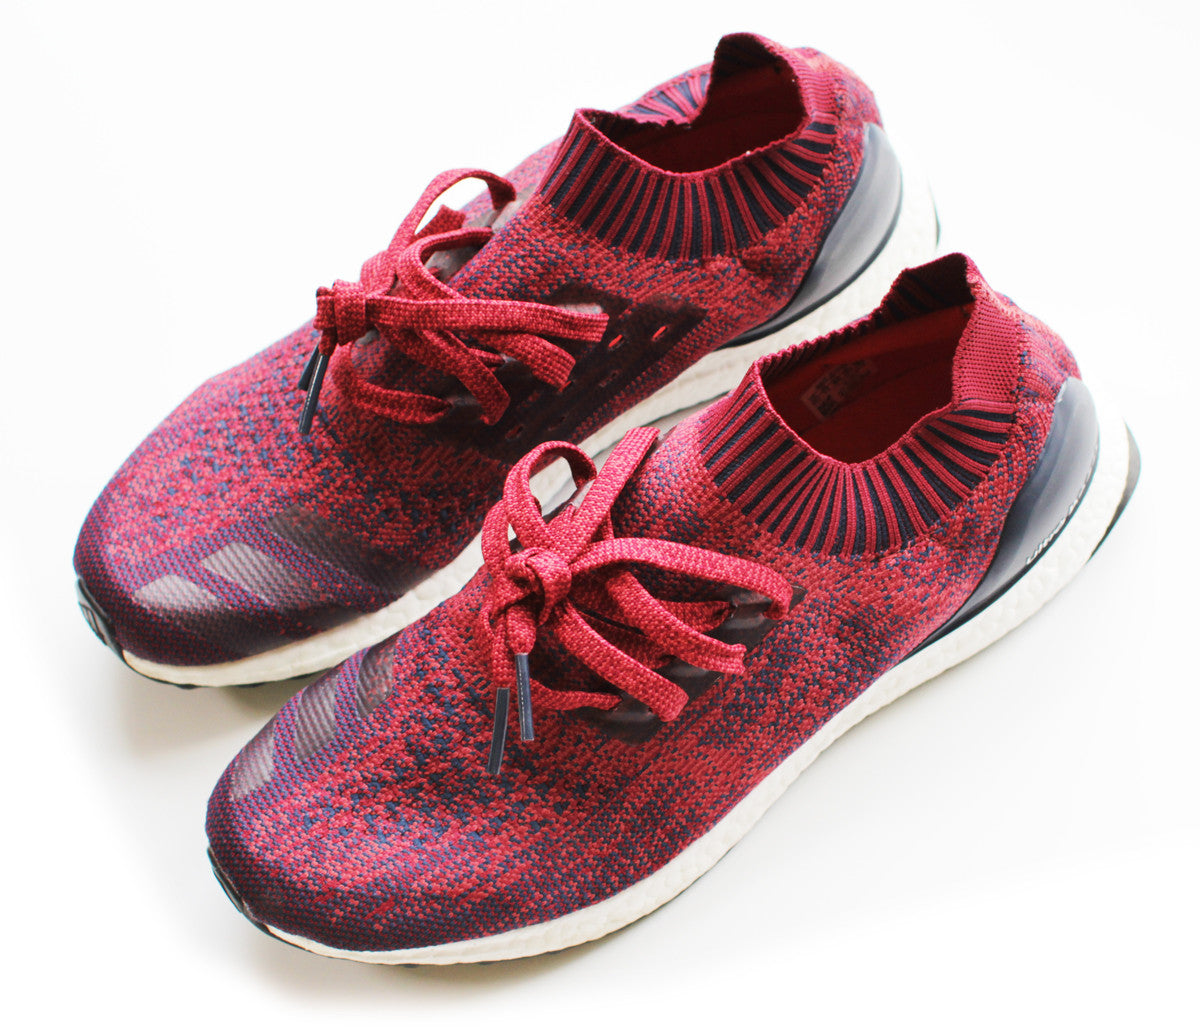 9d4213e1c314b3 Adidas Ultra Boost Uncaged Review – Sundried Activewear